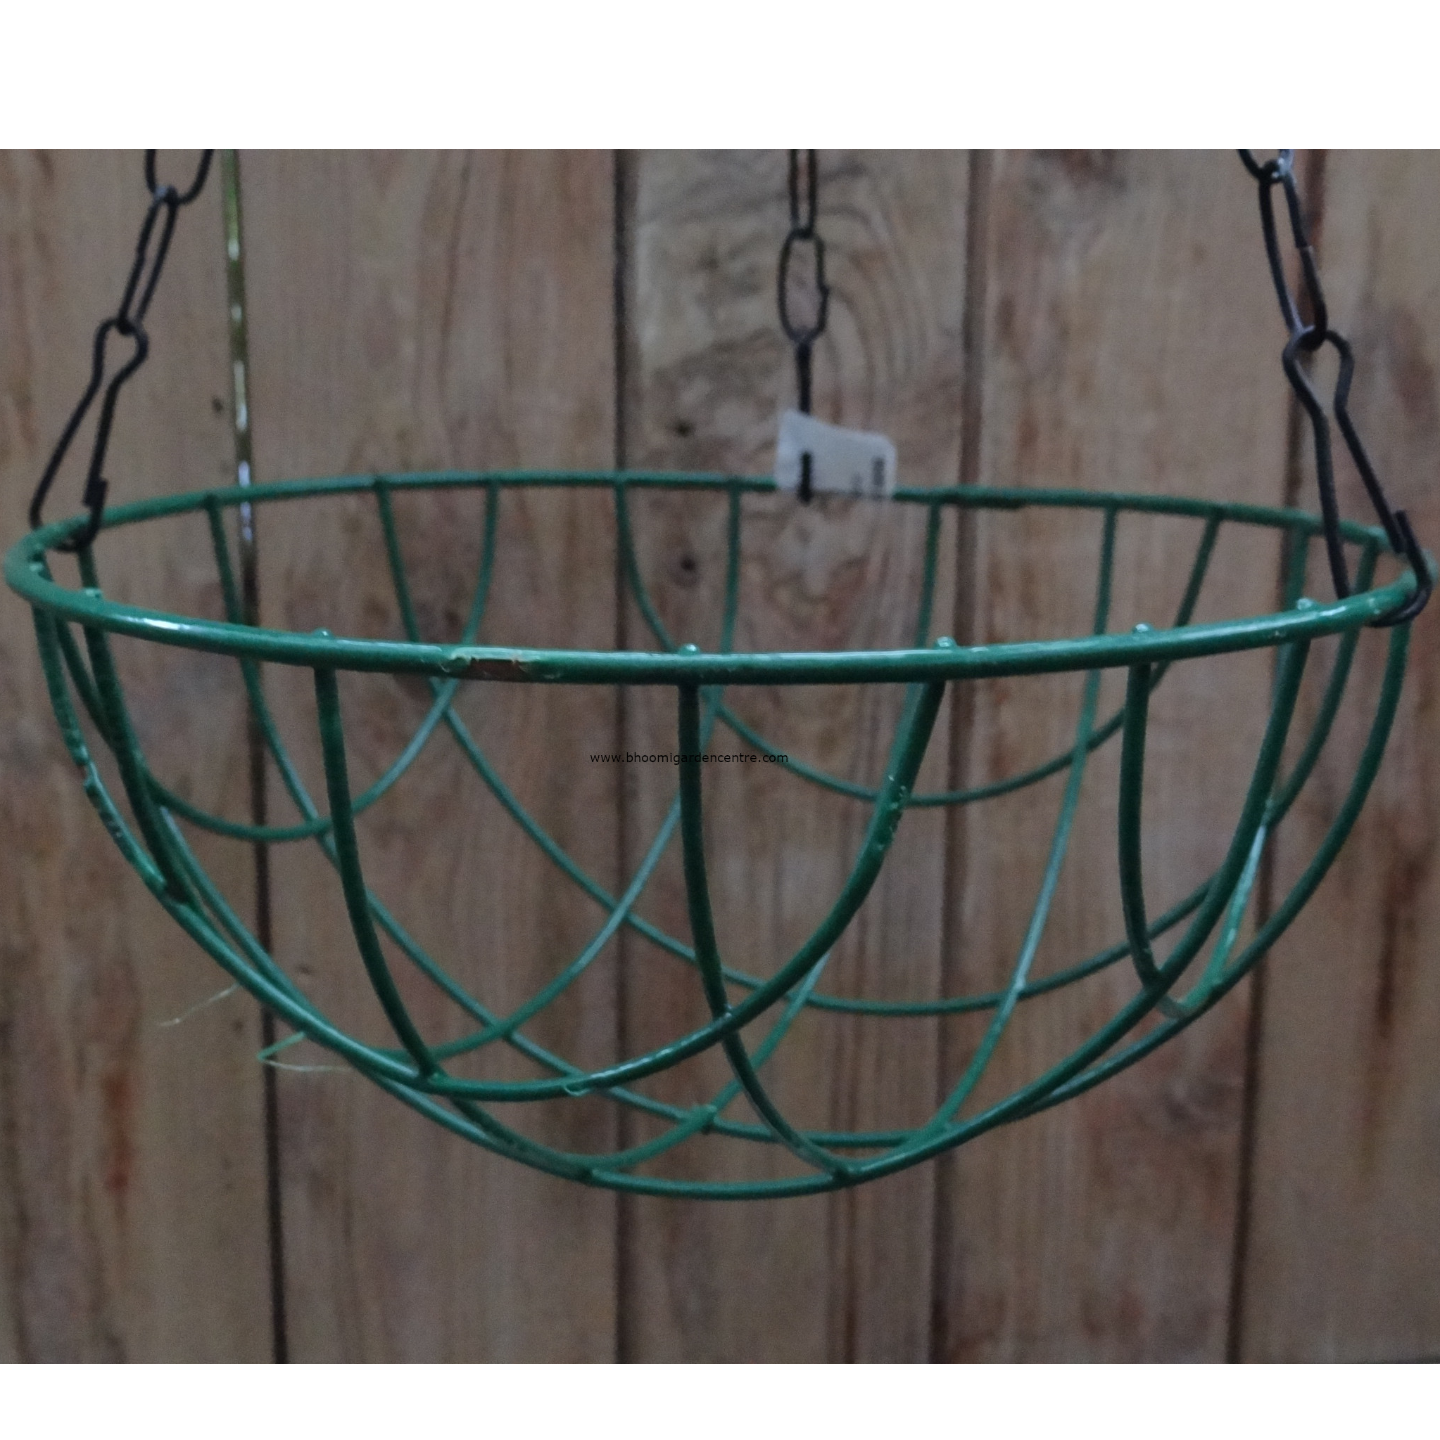 Metal hanging regular 6 inch